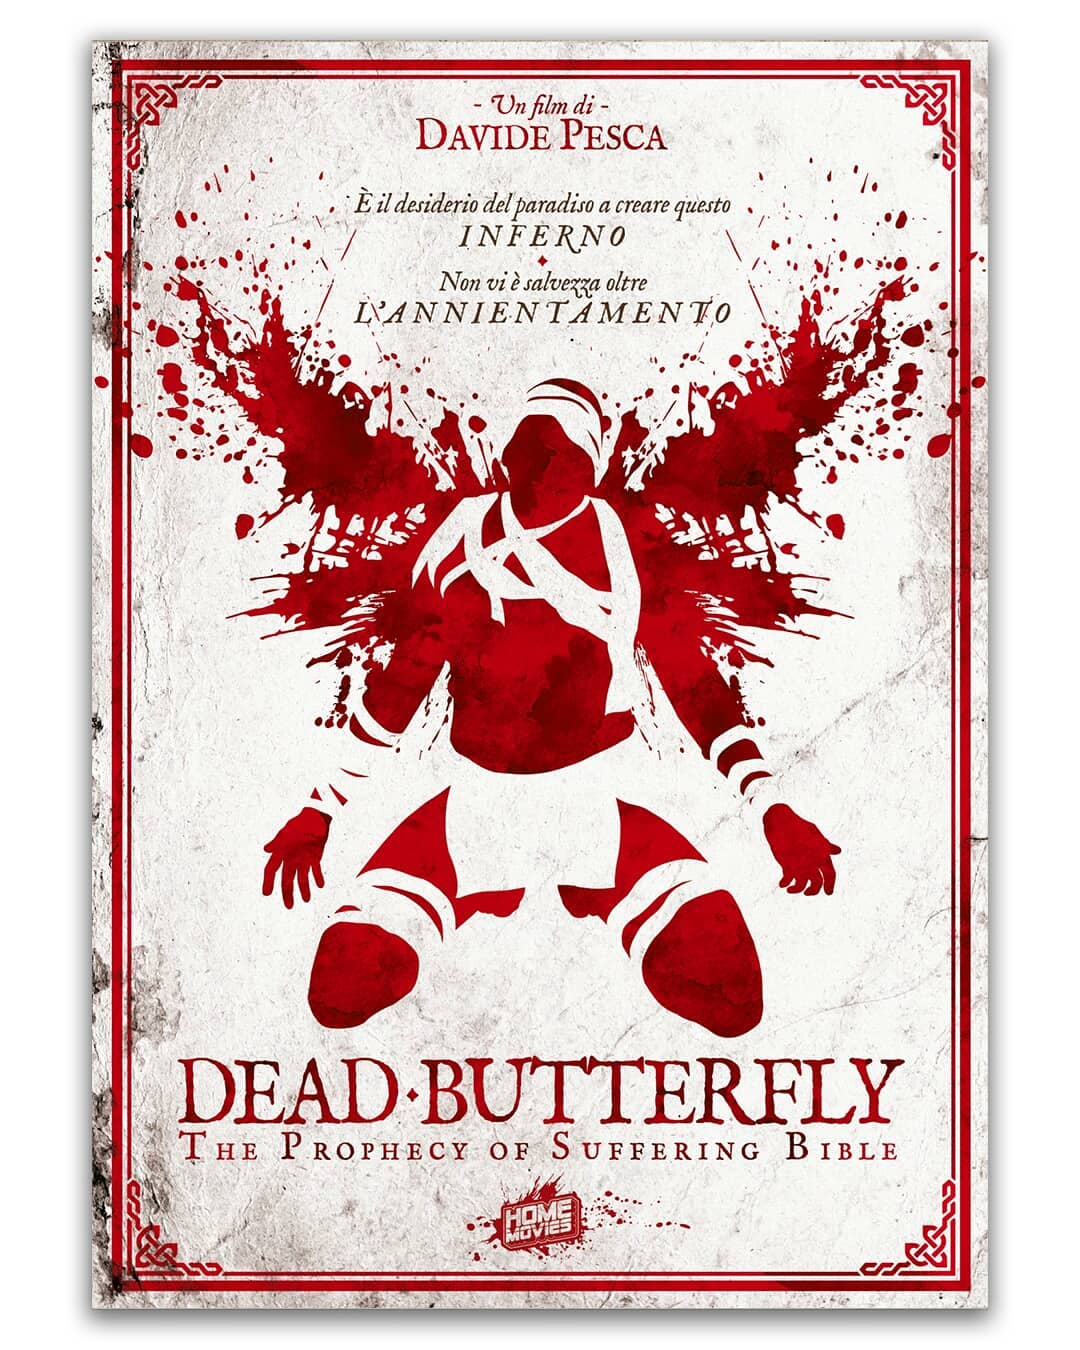 [RECENSIONE] Dead Butterfly: Prophecy of Suffering Bible